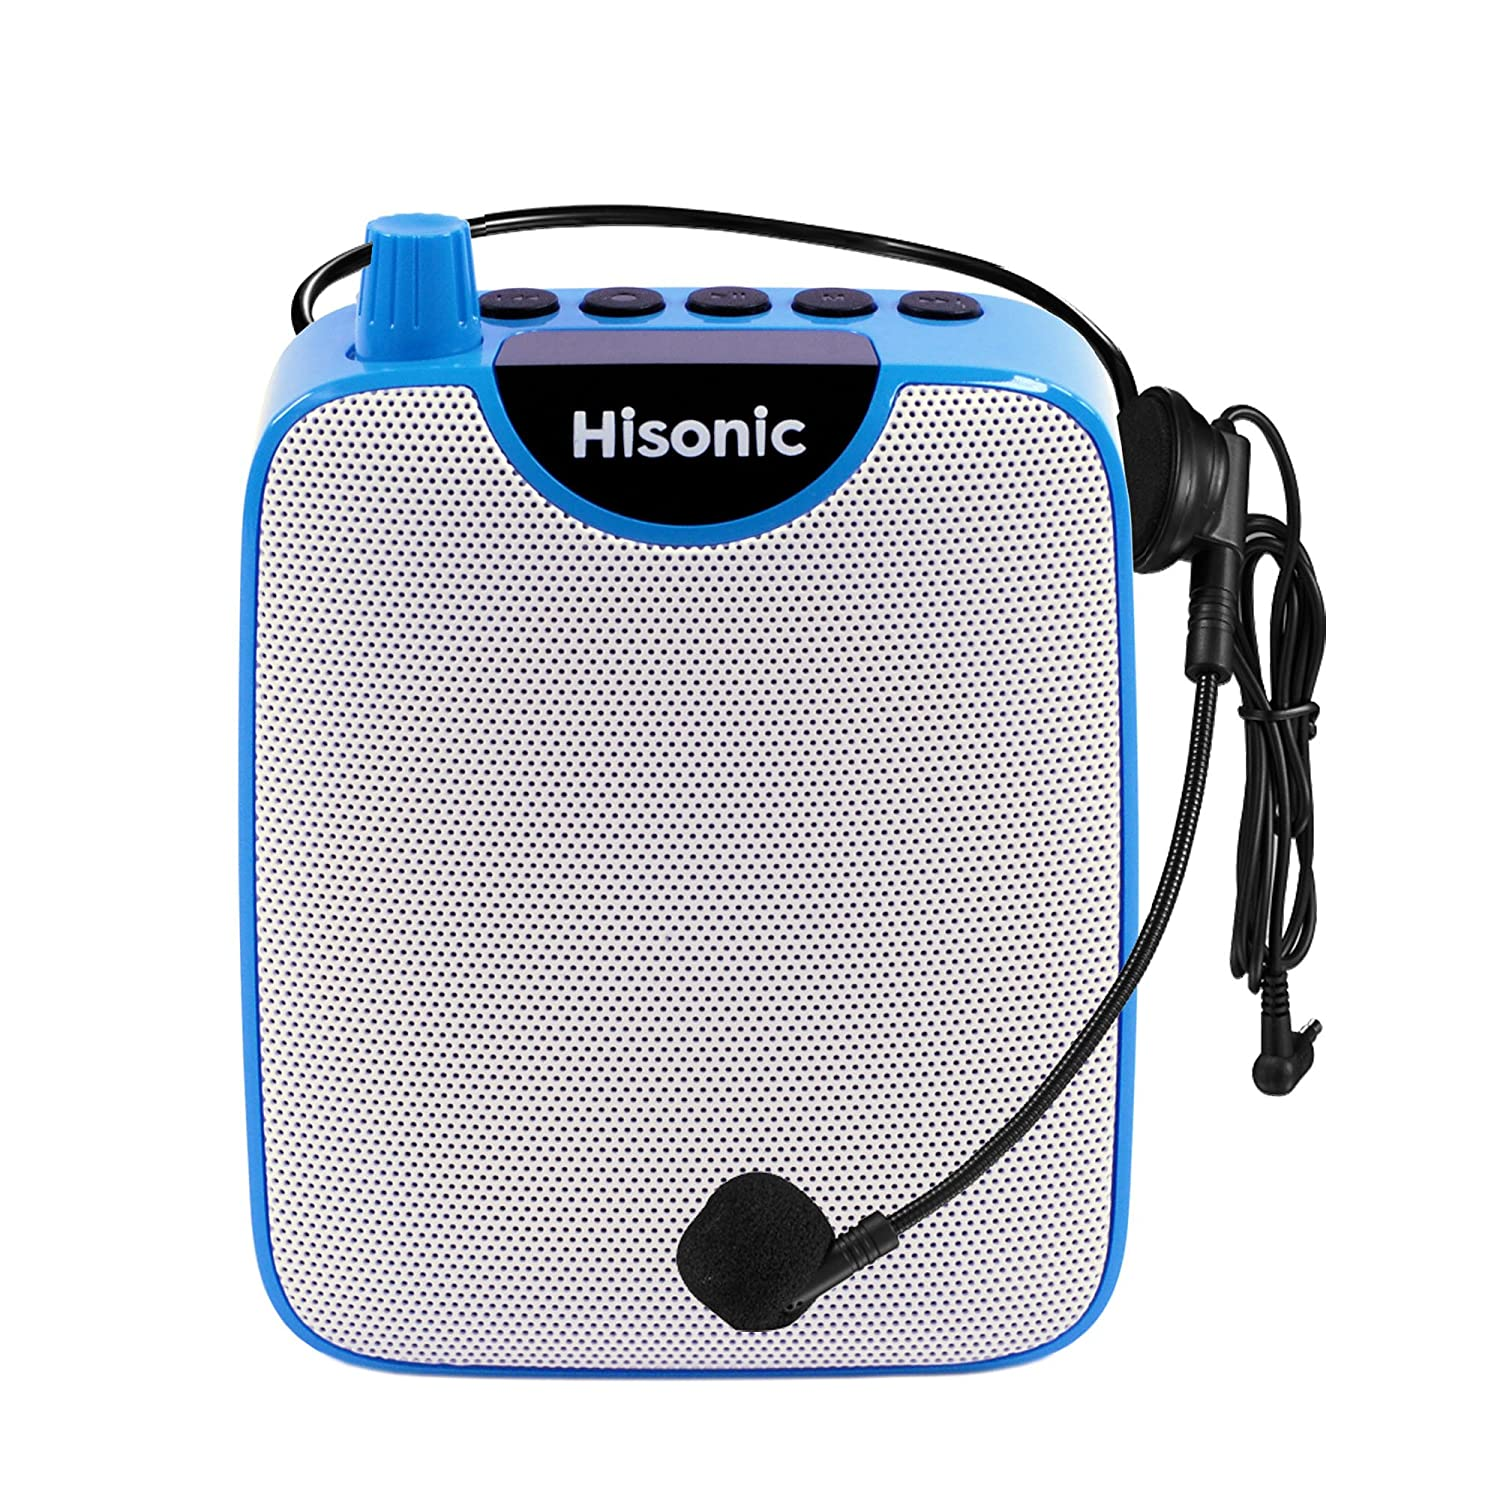 HISONIC HS122BT-HL Portable PA System with Dual Channel Wireless Microphones (One handheland and one Body Pack with headset and laverlier), Lithium Rechargeable Battery, Bluetooth Streaming Music From your Cell Phones,iPads, Android Pads and Computer, with